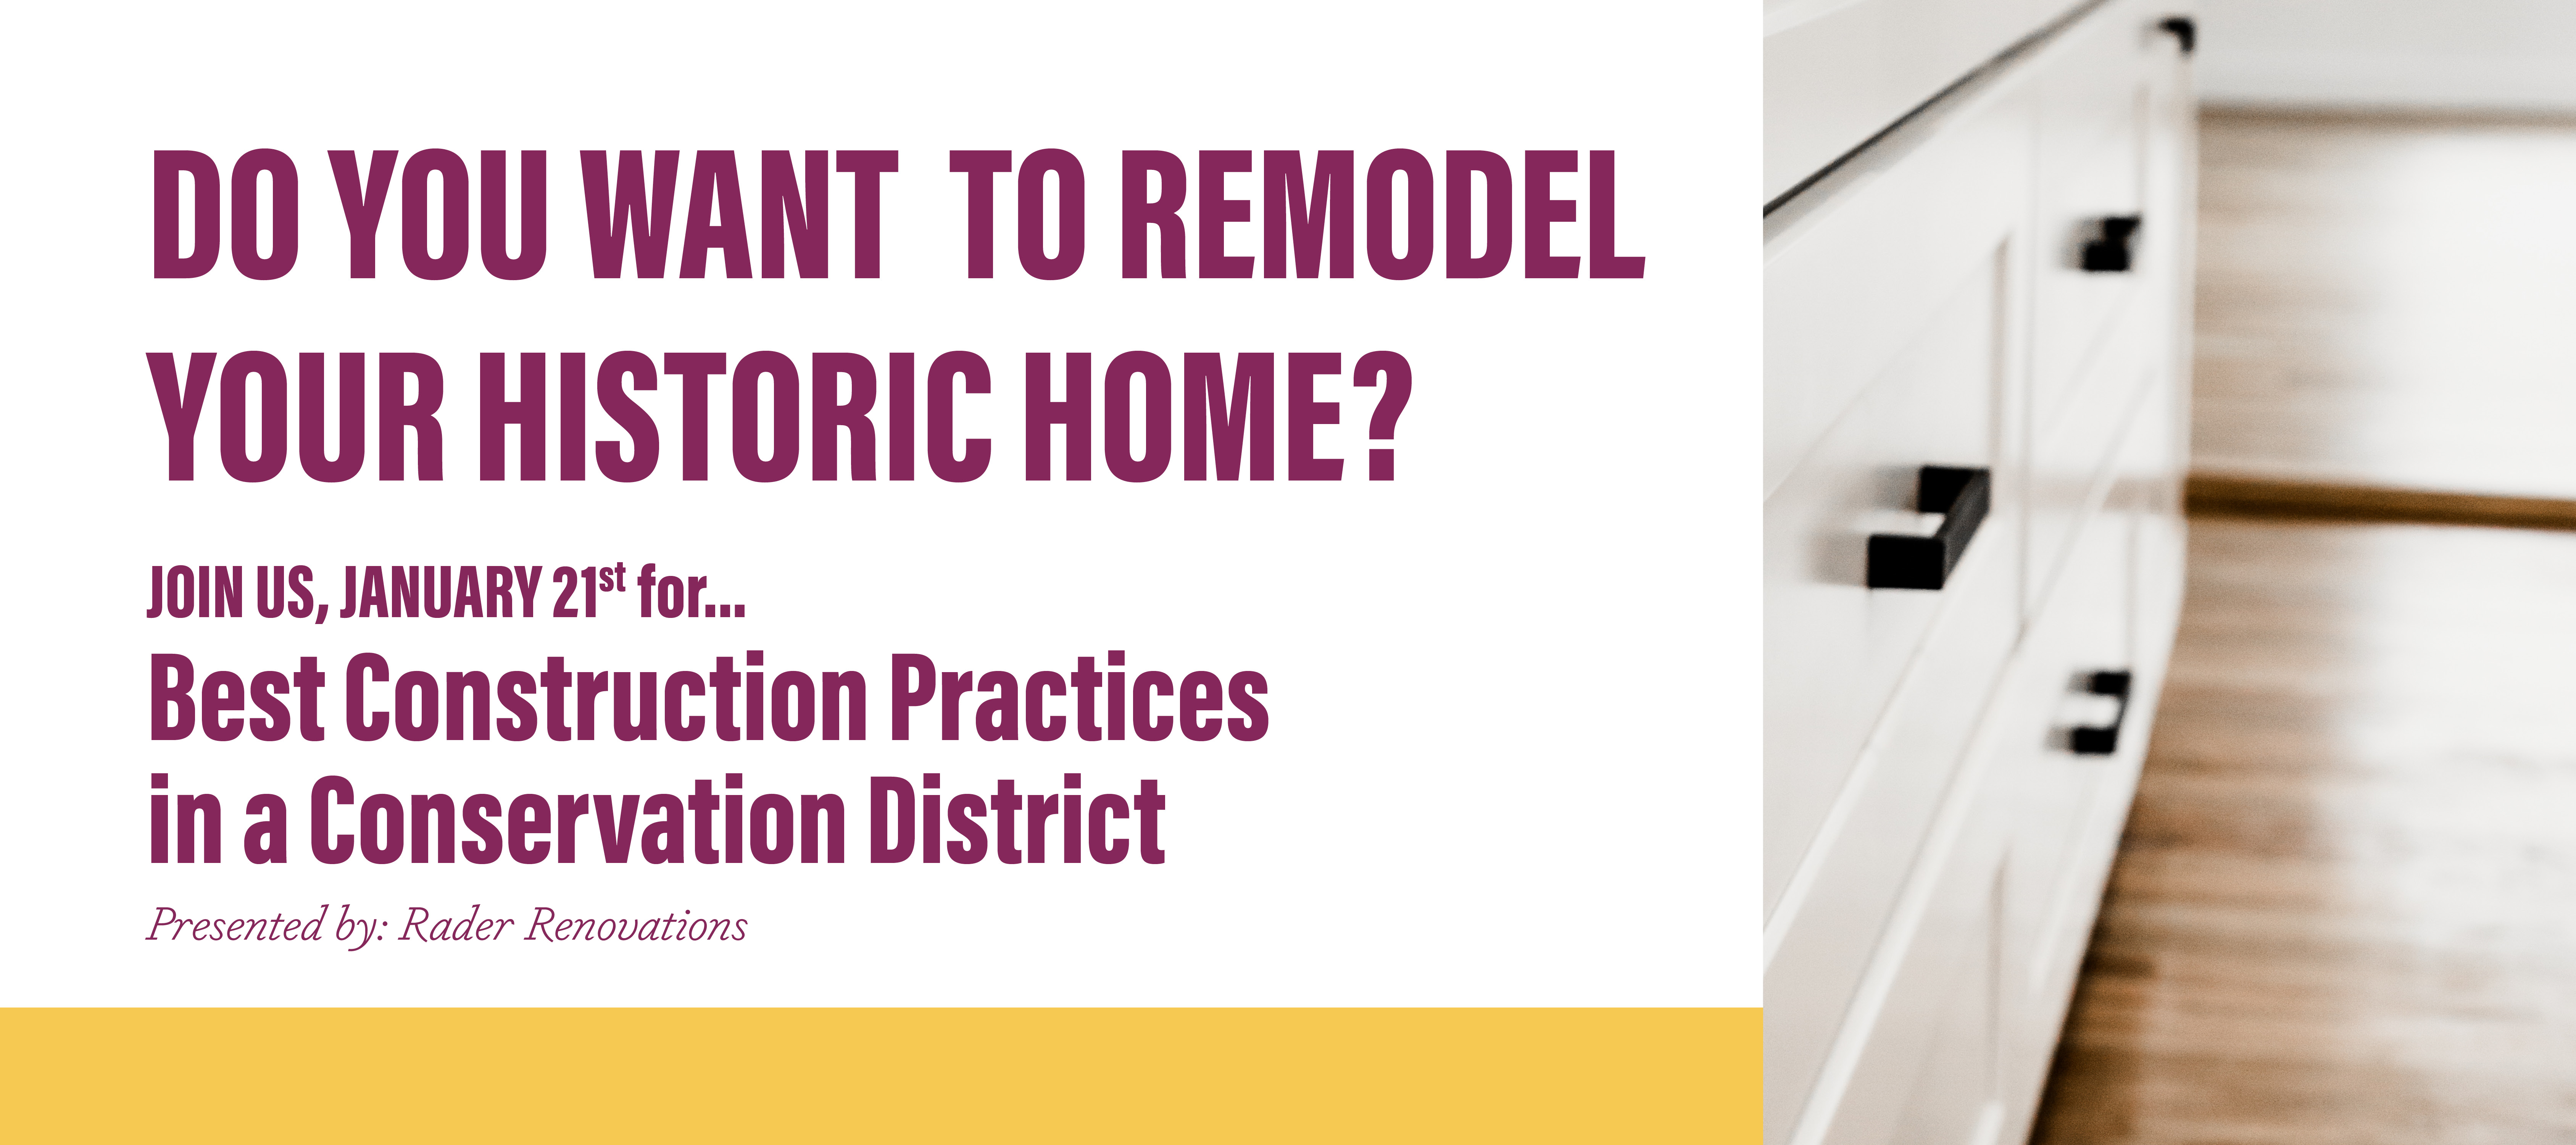 Ready to begin your Oak Cliff historic home renovation? We have a panel of experts ready to share their expertise with you on January 21st 2020!